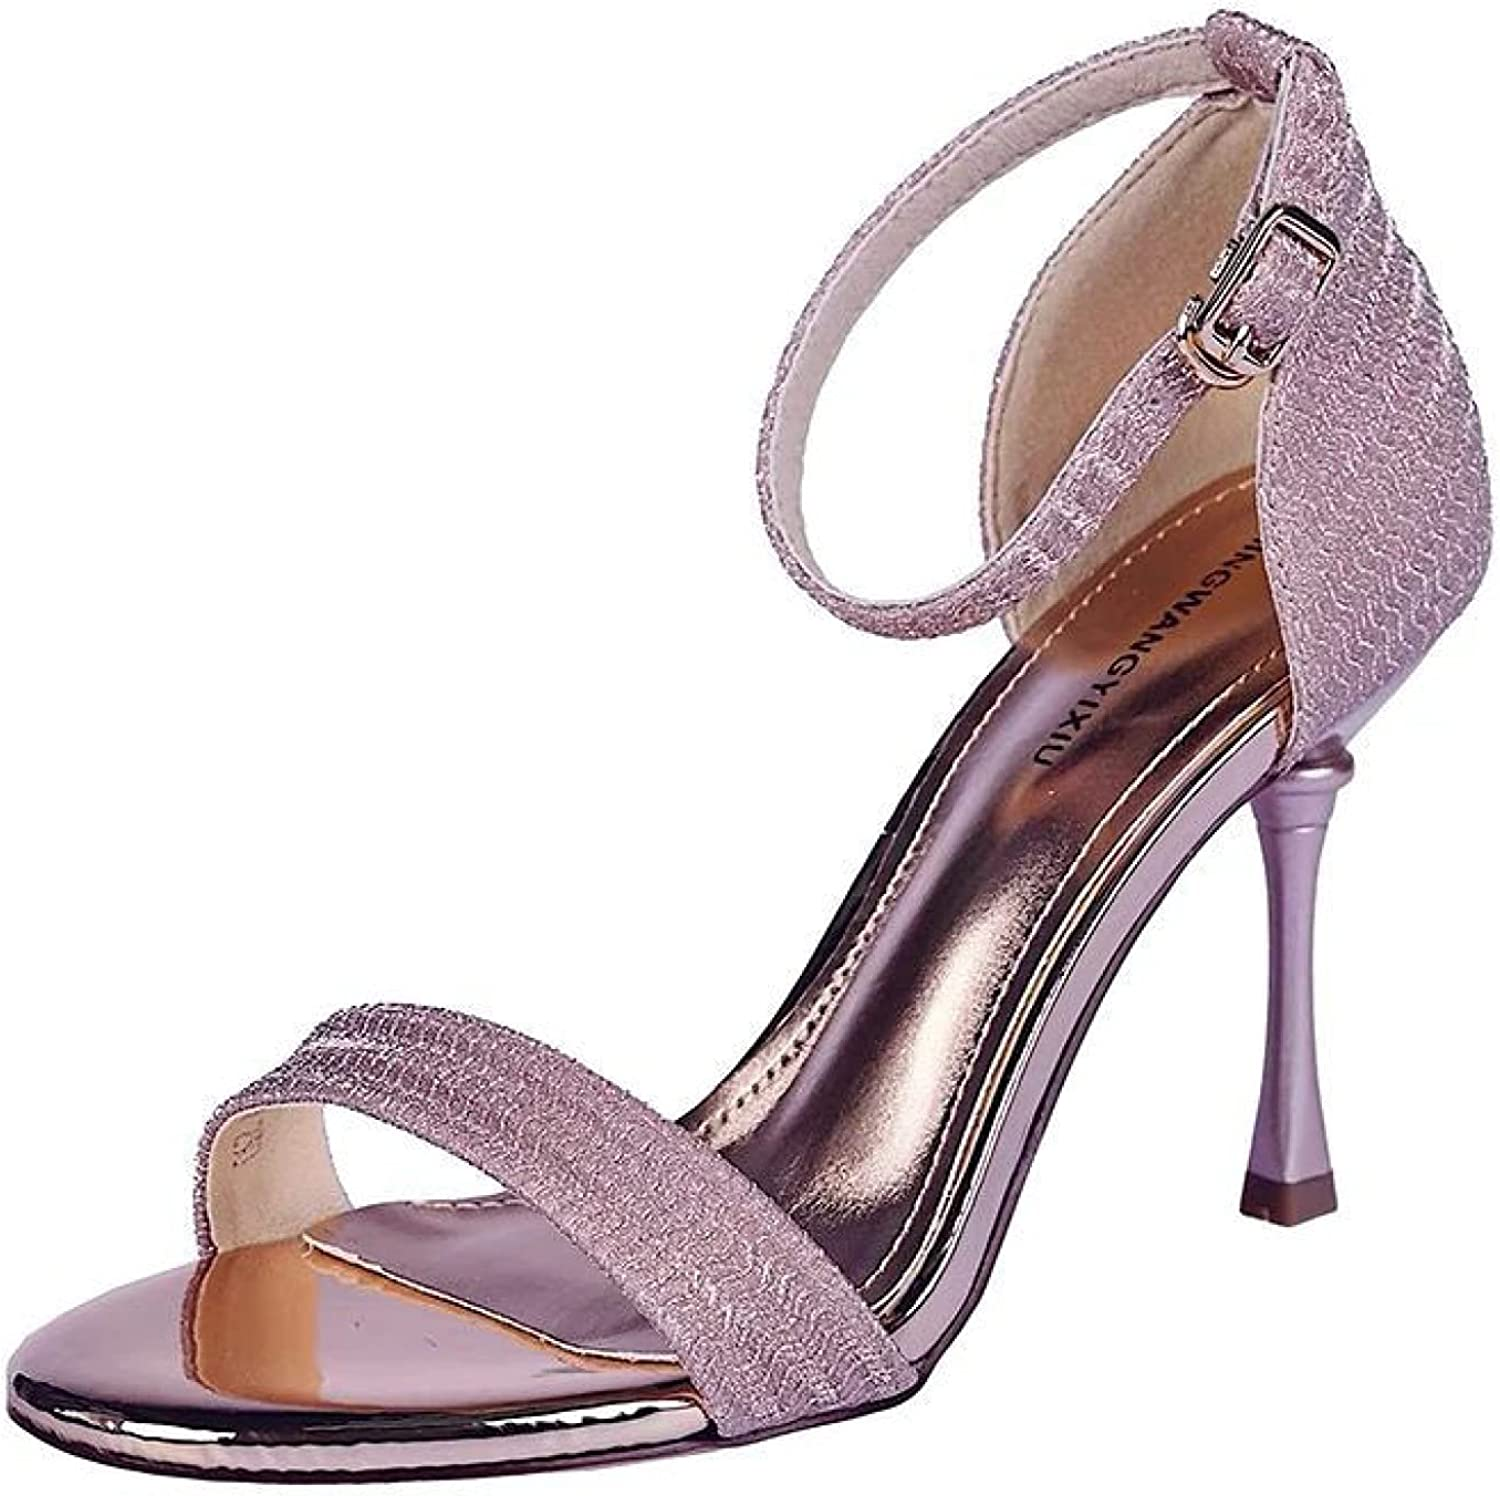 Woman Stiletto Very popular Heels Sandals Cozy Peep Dress Toe with Shoes Sexy Over item handling ☆